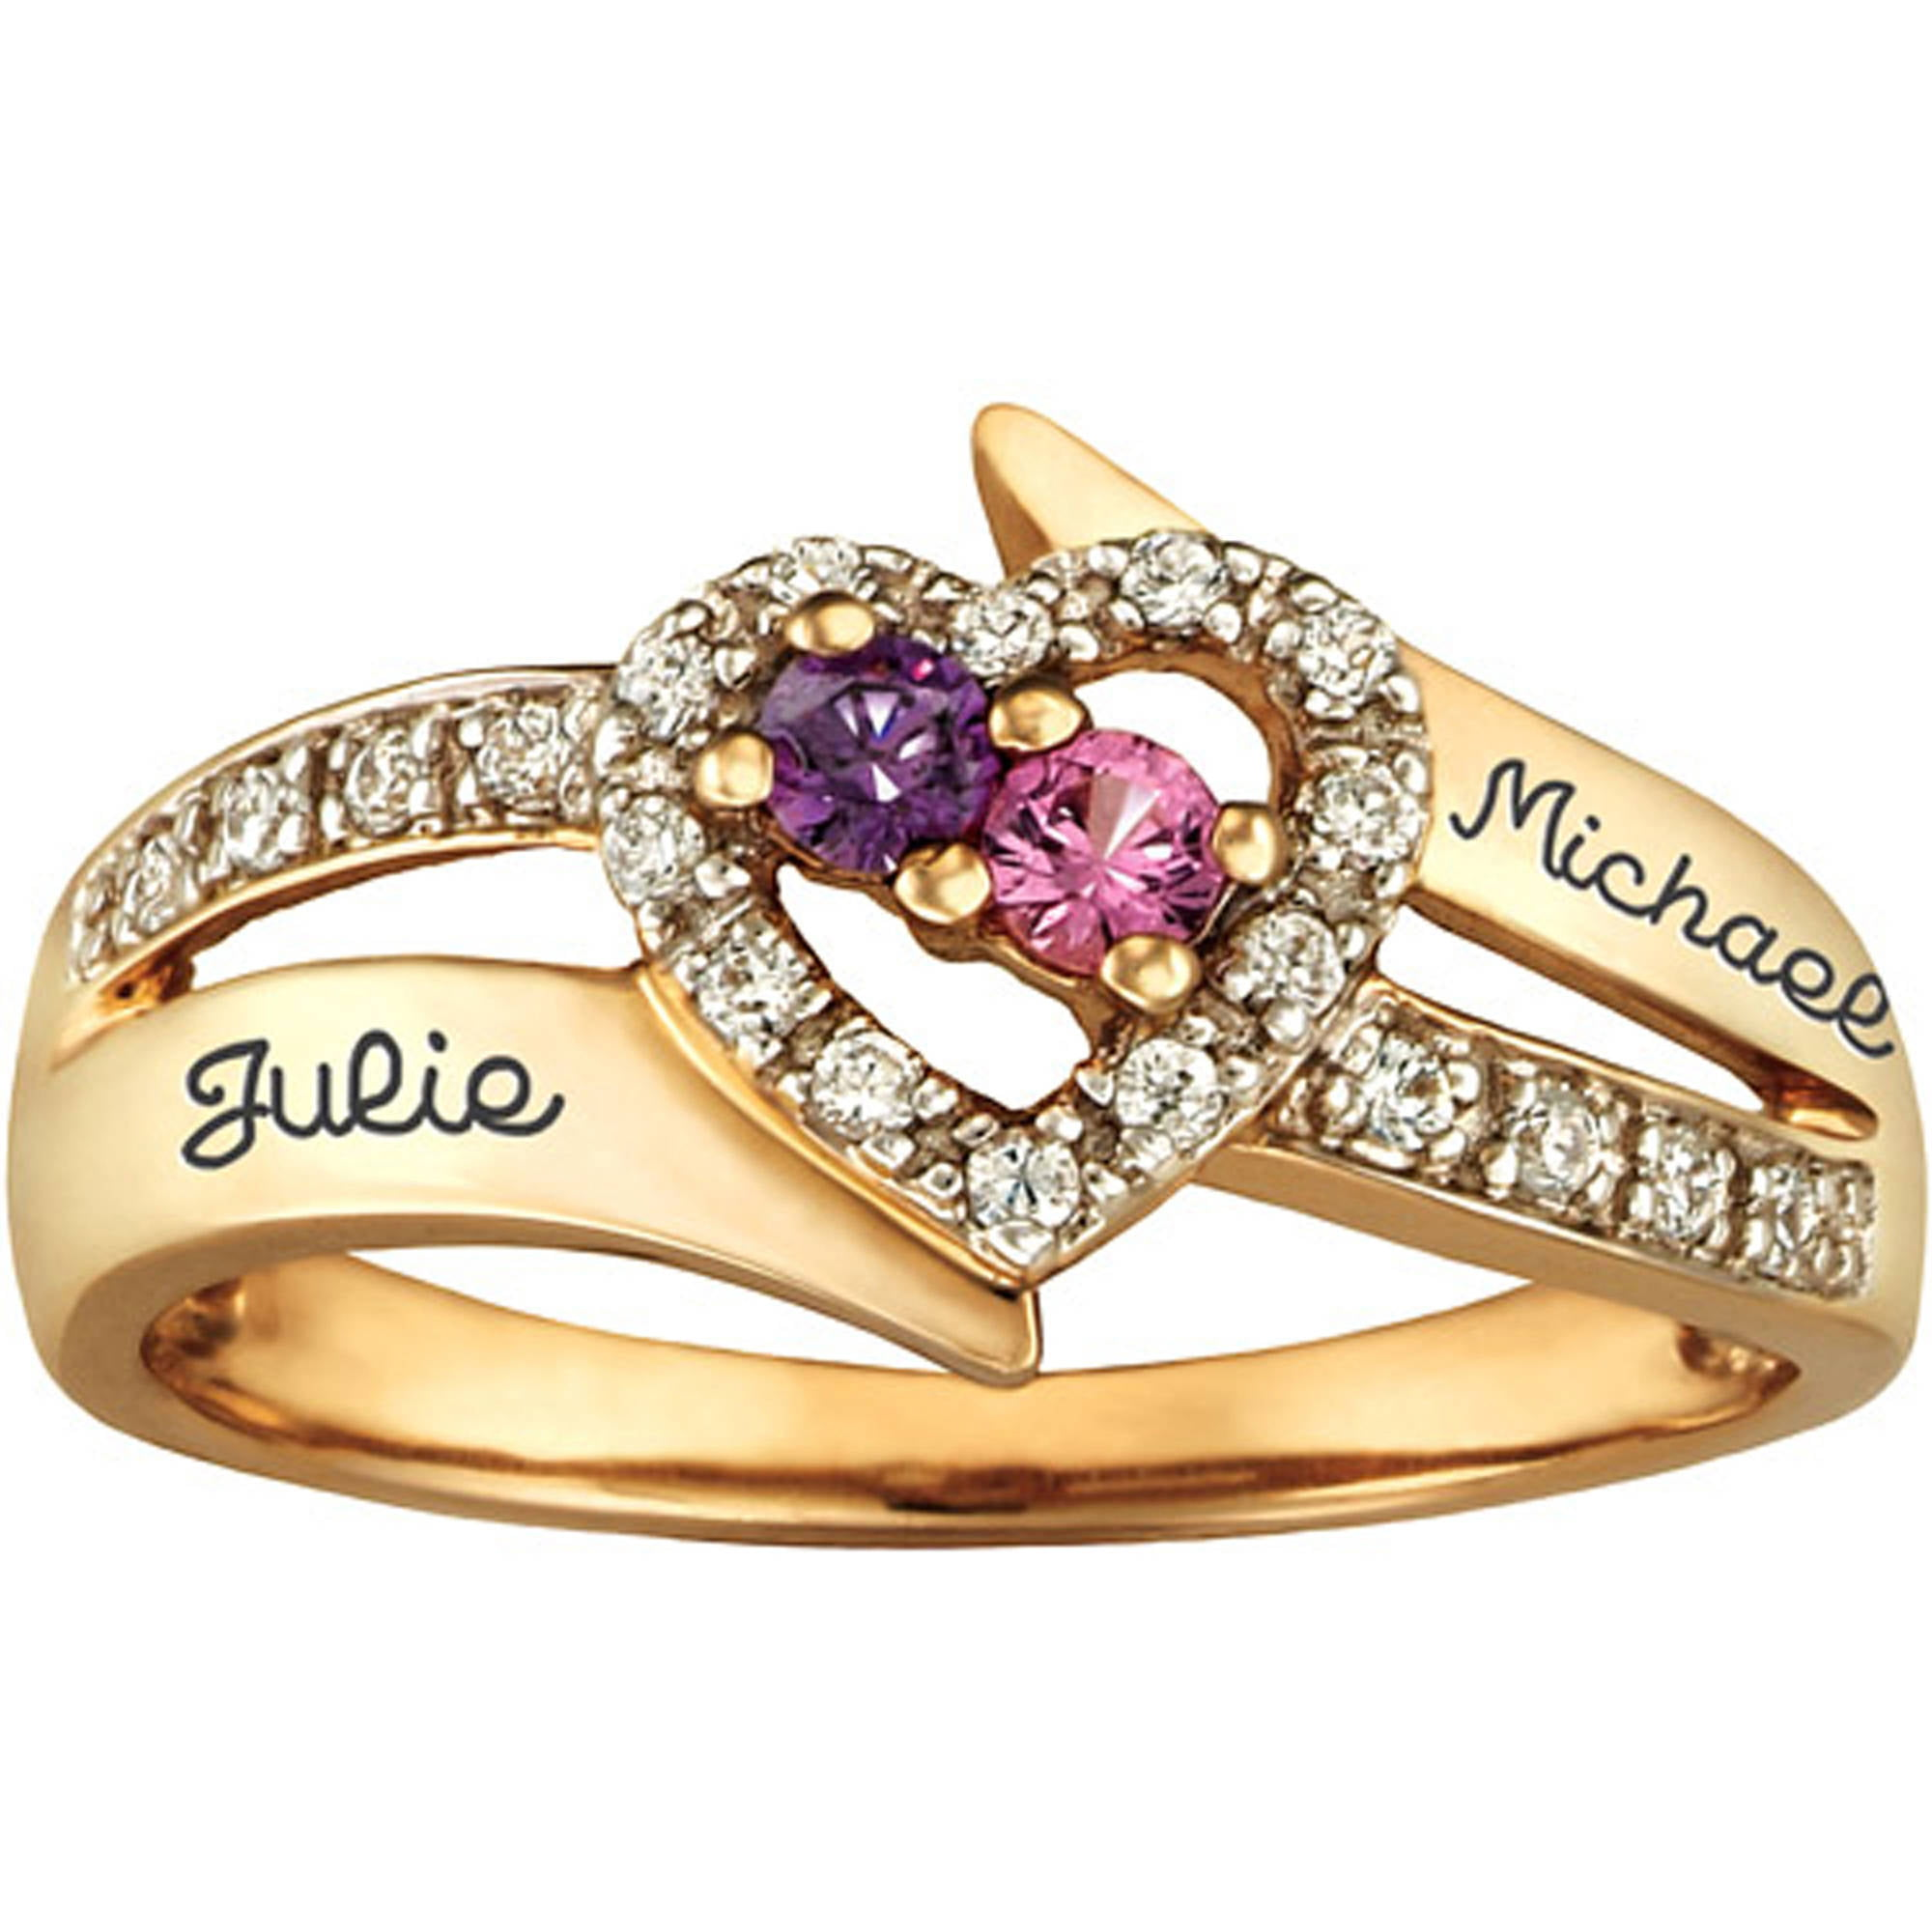 Keepsake Personalized Family Jewelry Enchantment Promise Ring